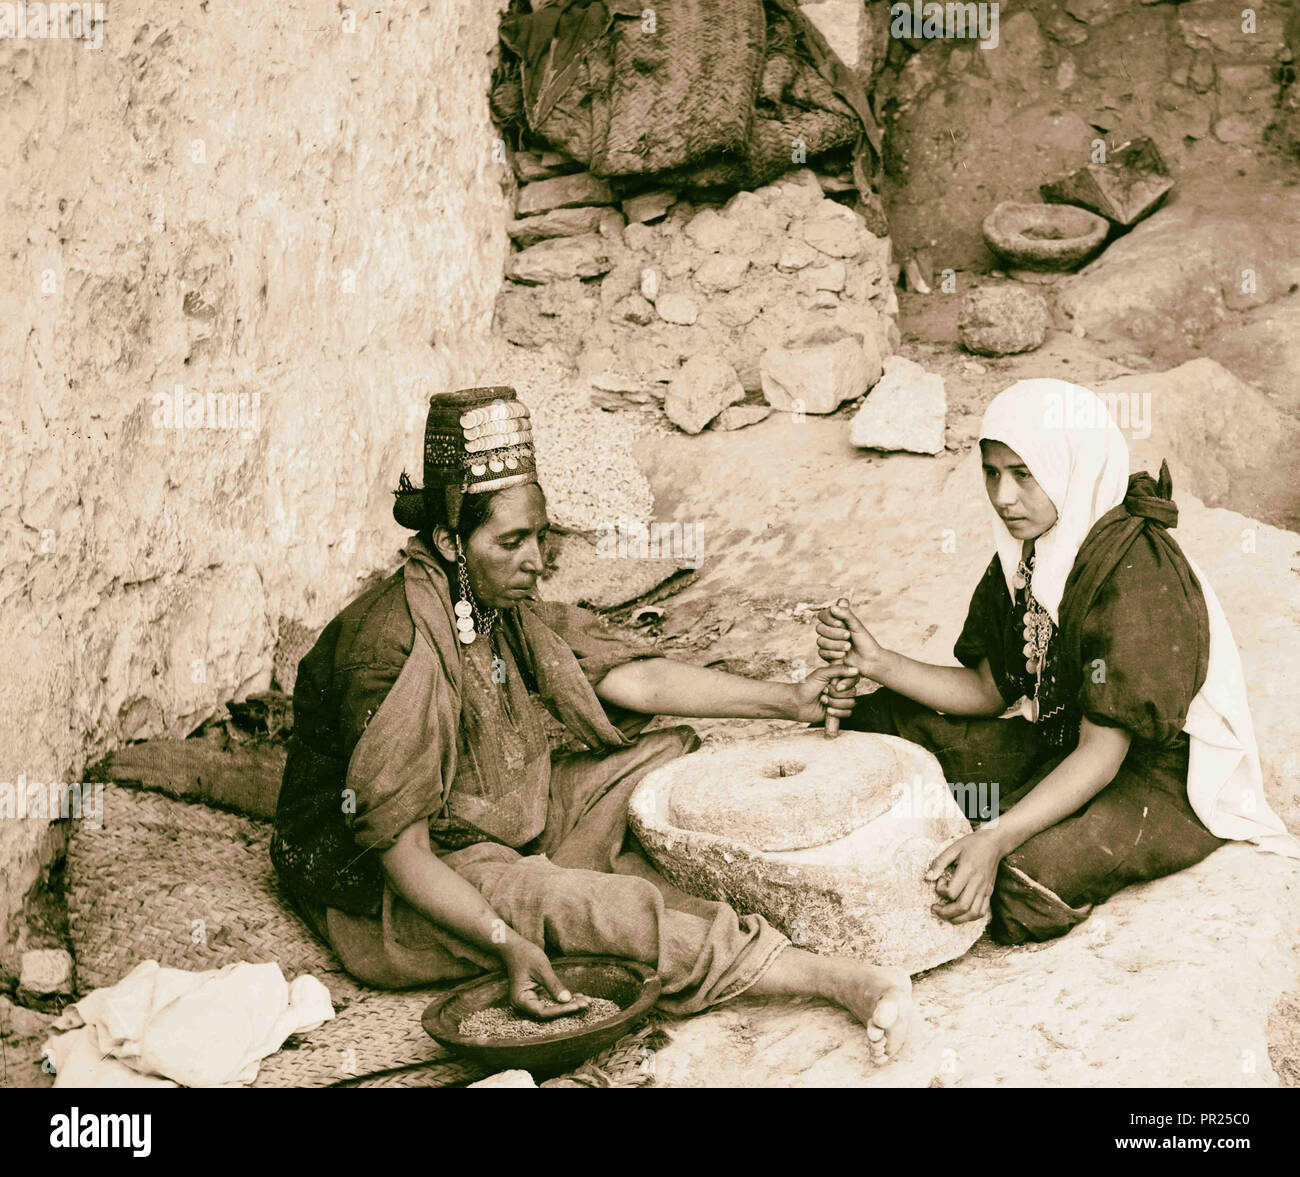 Costumes, characters and ceremonies, 'Two women at the mill'. 1898, Middle East, Israel and/or Palestine - Stock Image